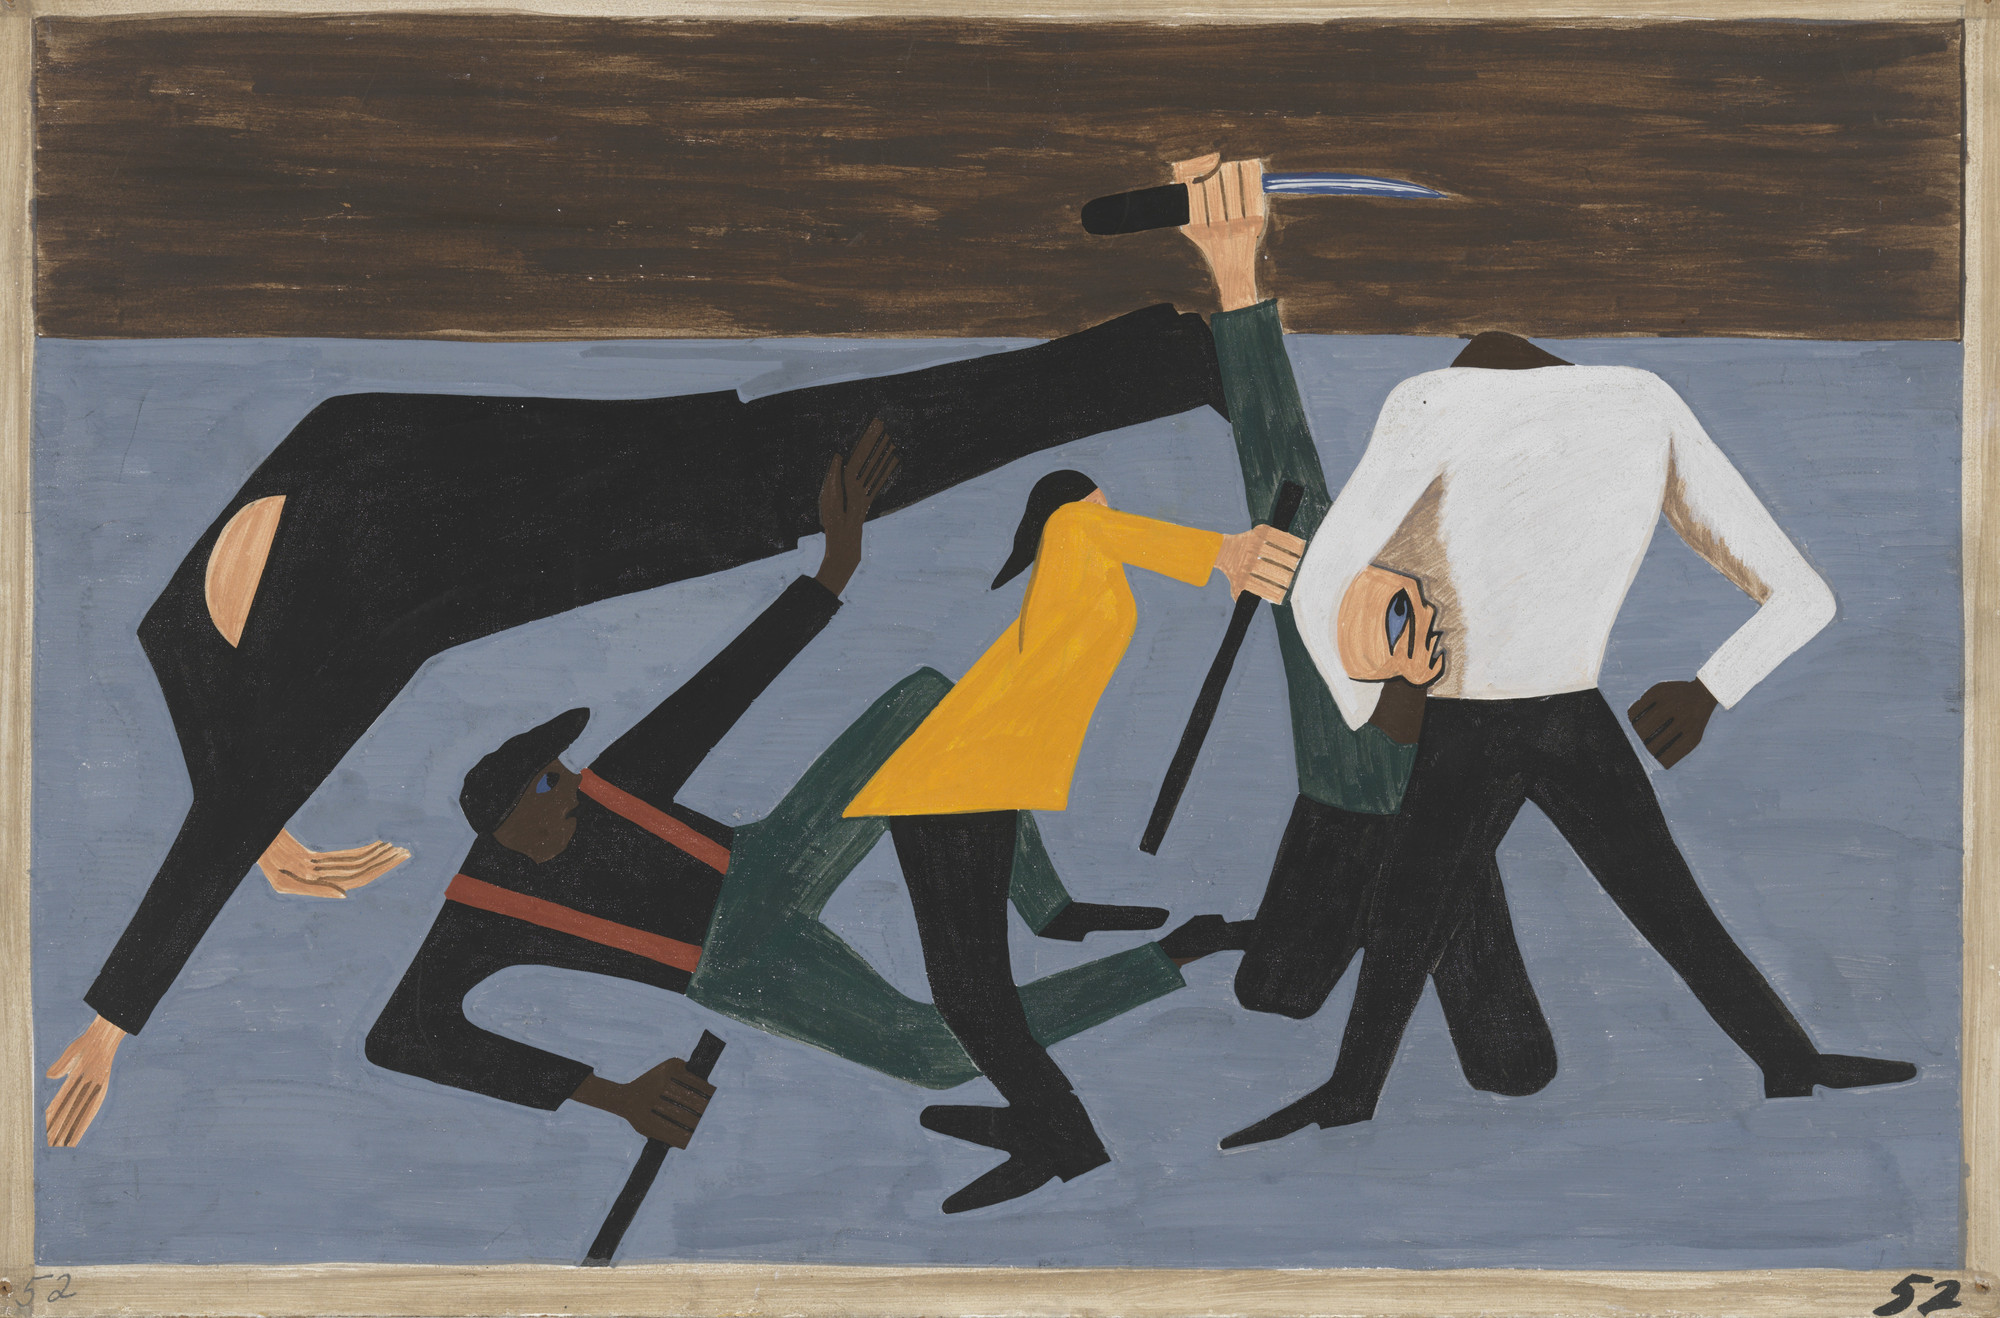 Jacob Lawrence. One of the largest race riots occurred in East St. Louis. 1940-41